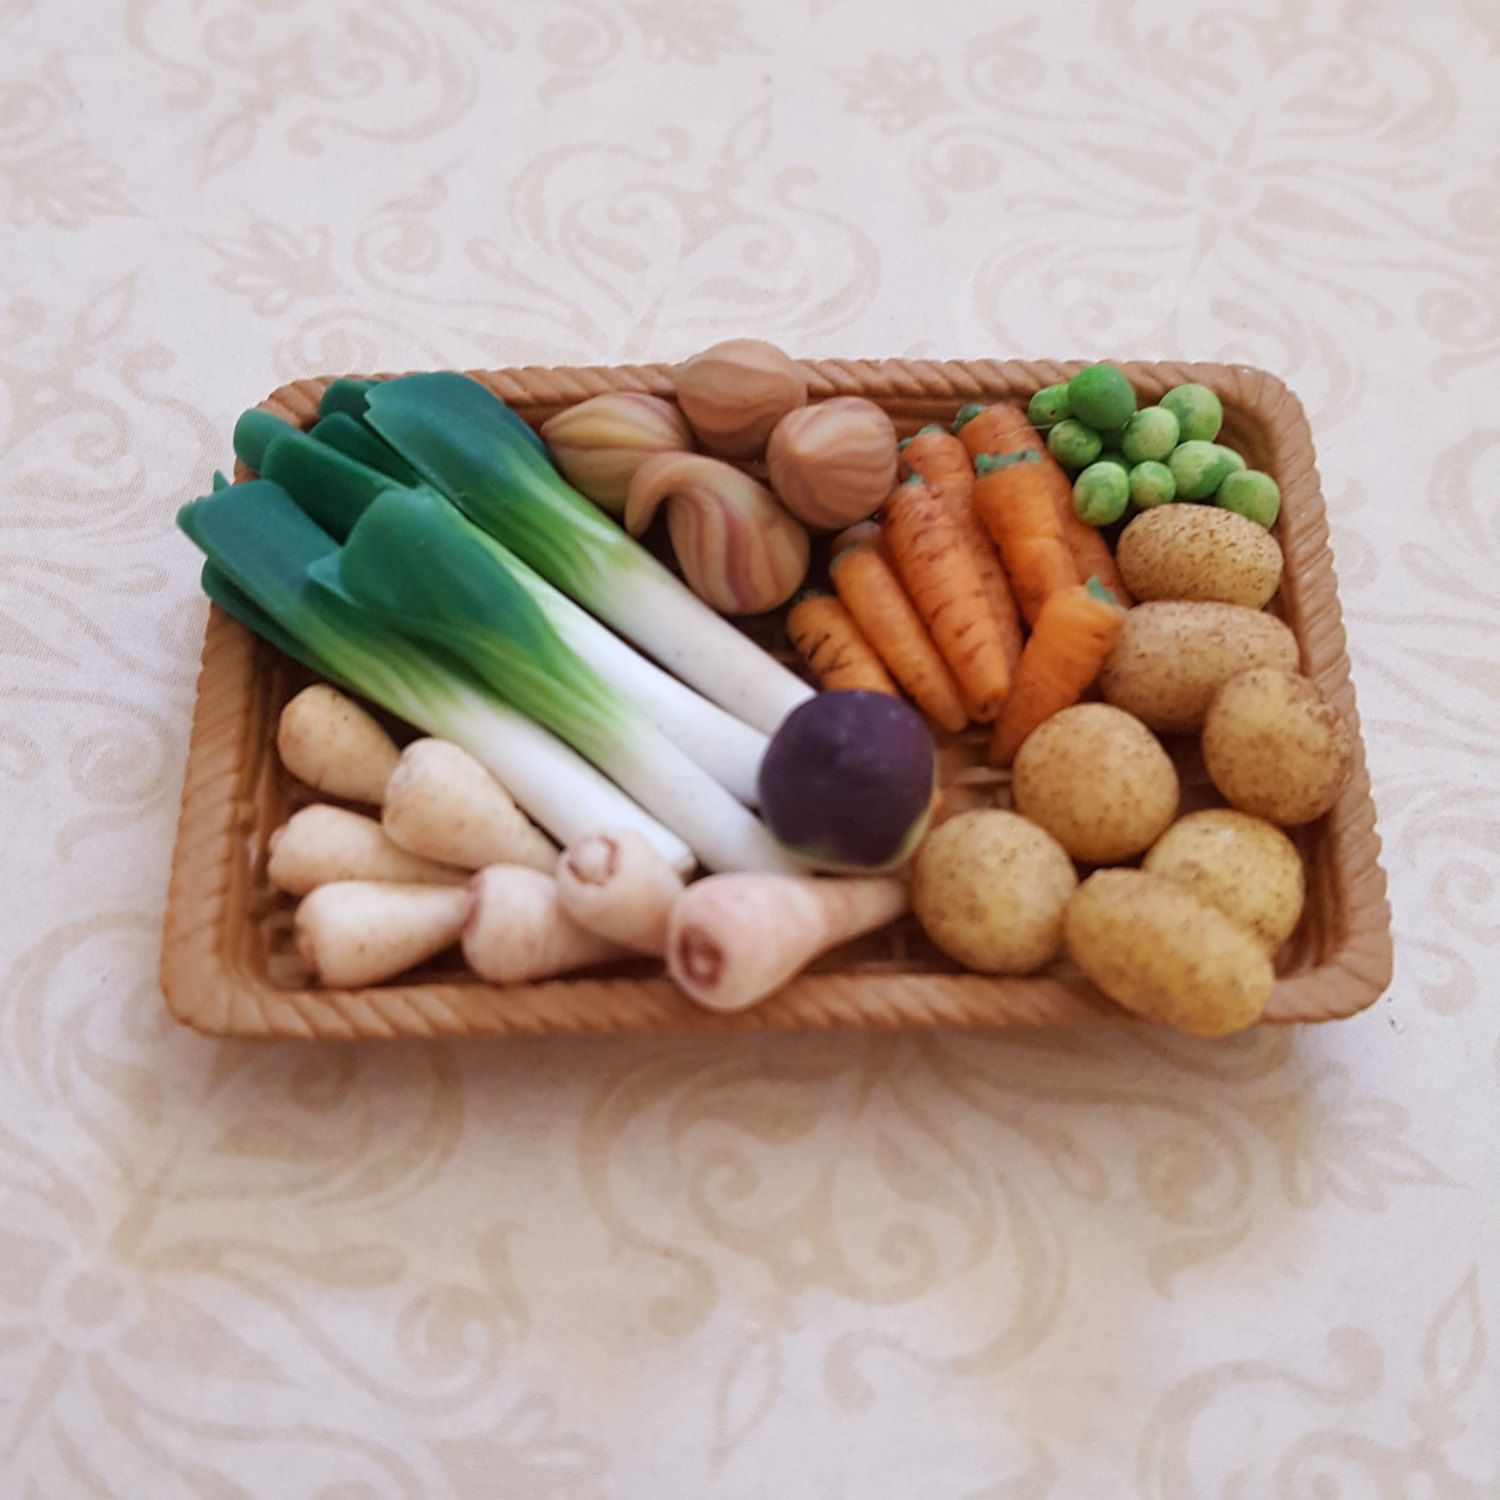 Dollhouse Accessories Mini Handcrafted Clay Fruits Doll House Miniature Vegetables Carrot For Doll Kitchen Toys & Hobbies